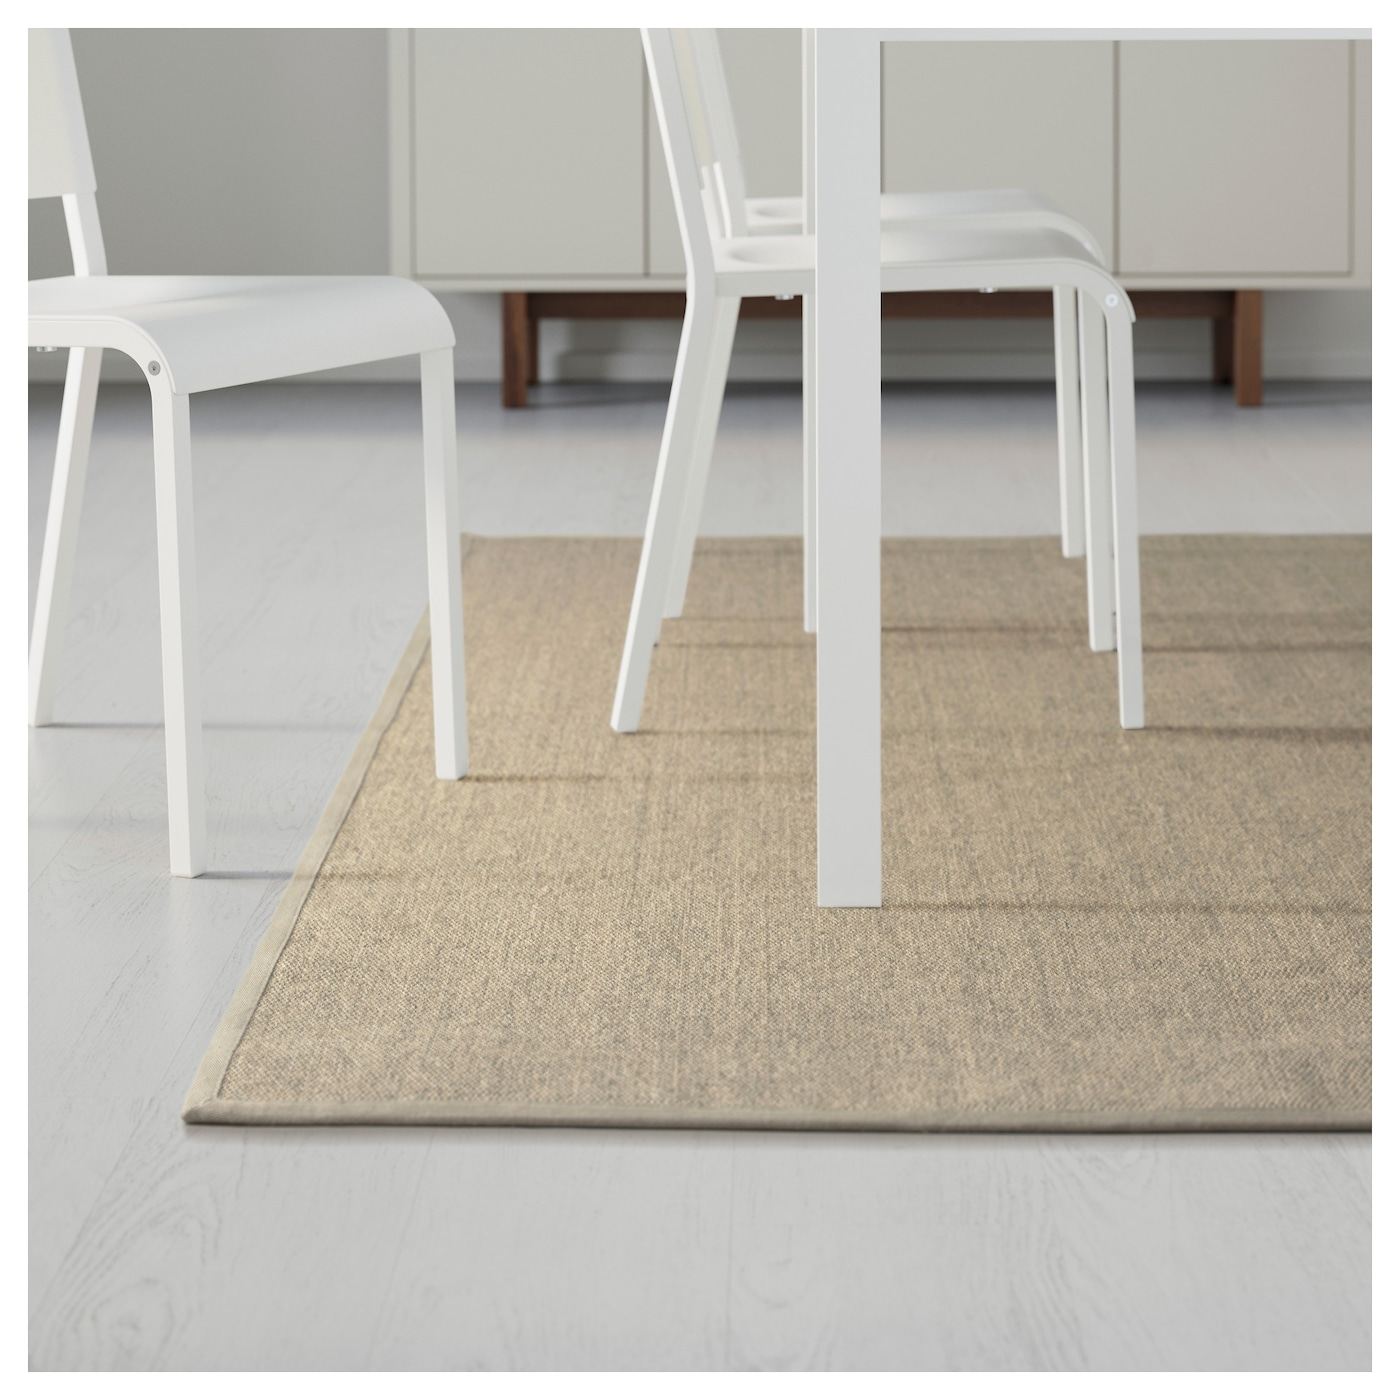 Osted rug flatwoven natural 160x230 cm ikea for Ikea rugs